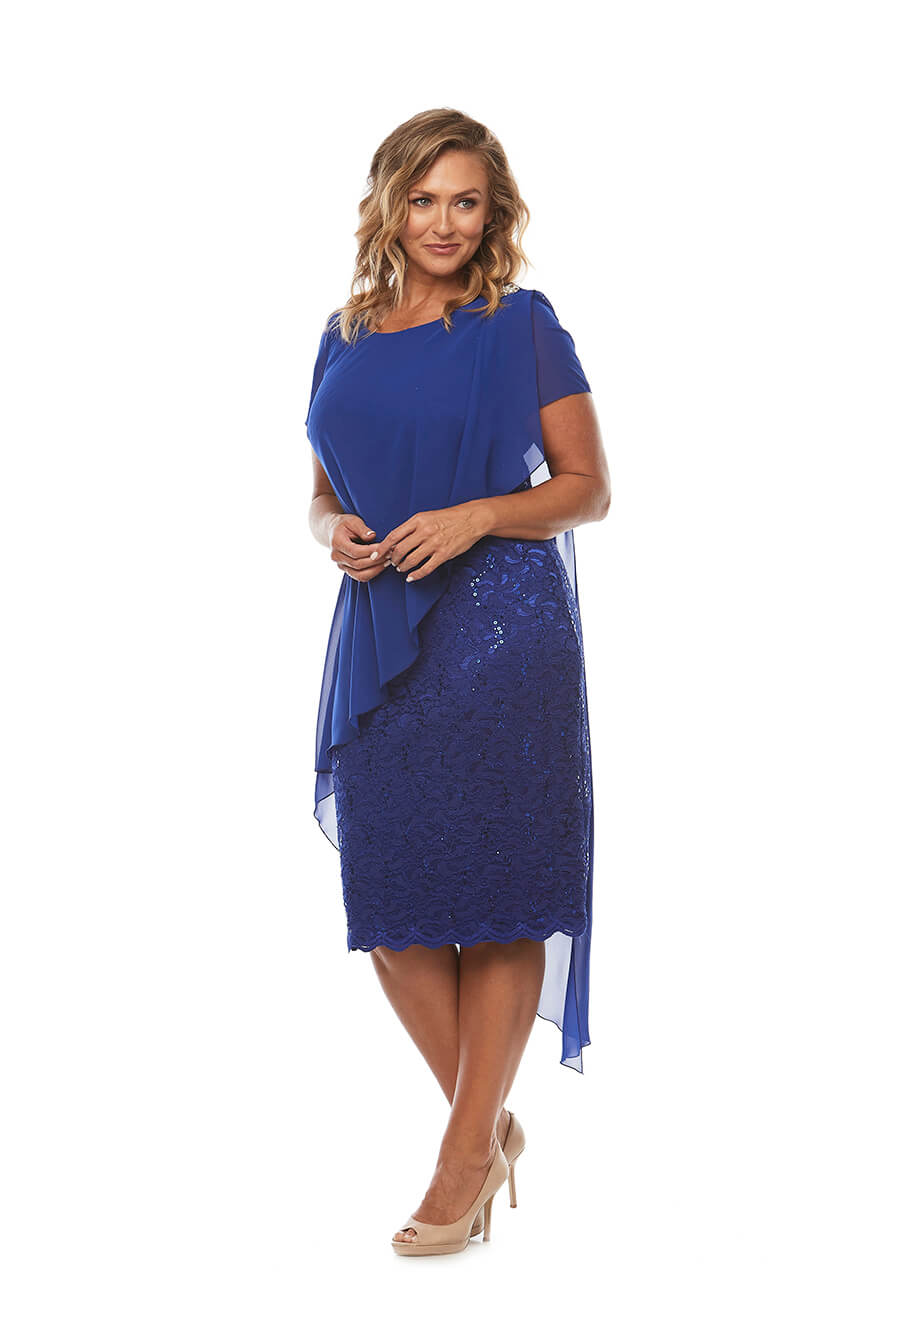 Short sleeve slimming dress with chiffon overlay and diamonte on shoulder